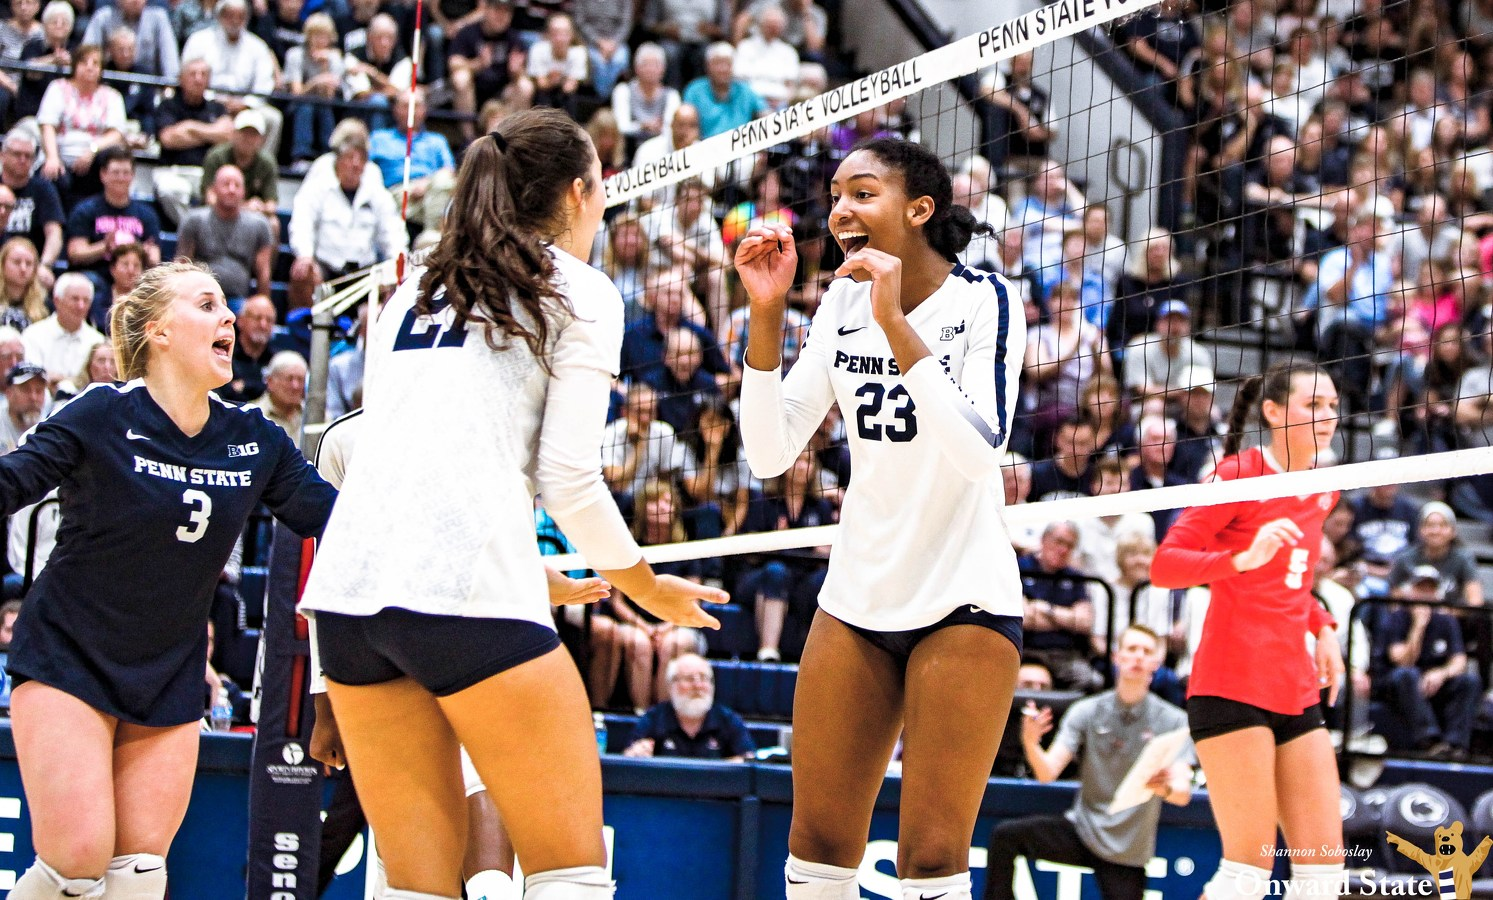 State College Pa Penn State Women S Volleyball Ranked No 8 In Preseason Coaches Poll